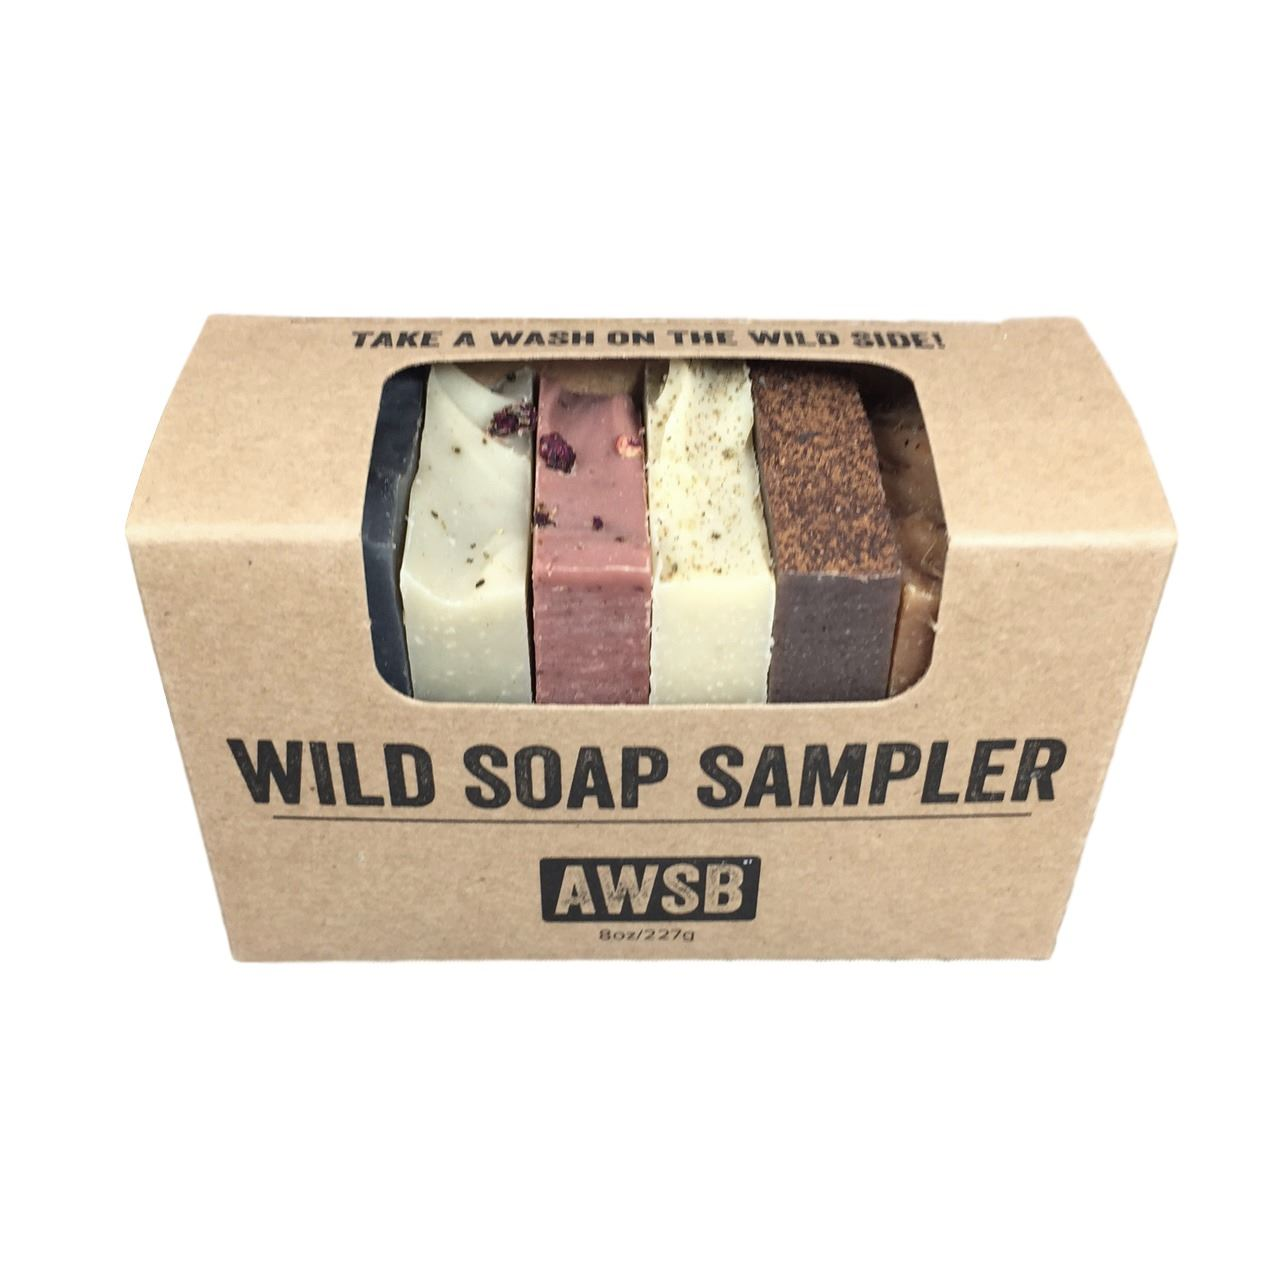 wild soap sampler wild,soap,sampler,soap sampler,gift,gift set,natural,handmade,organic,travel soaps,guest soaps